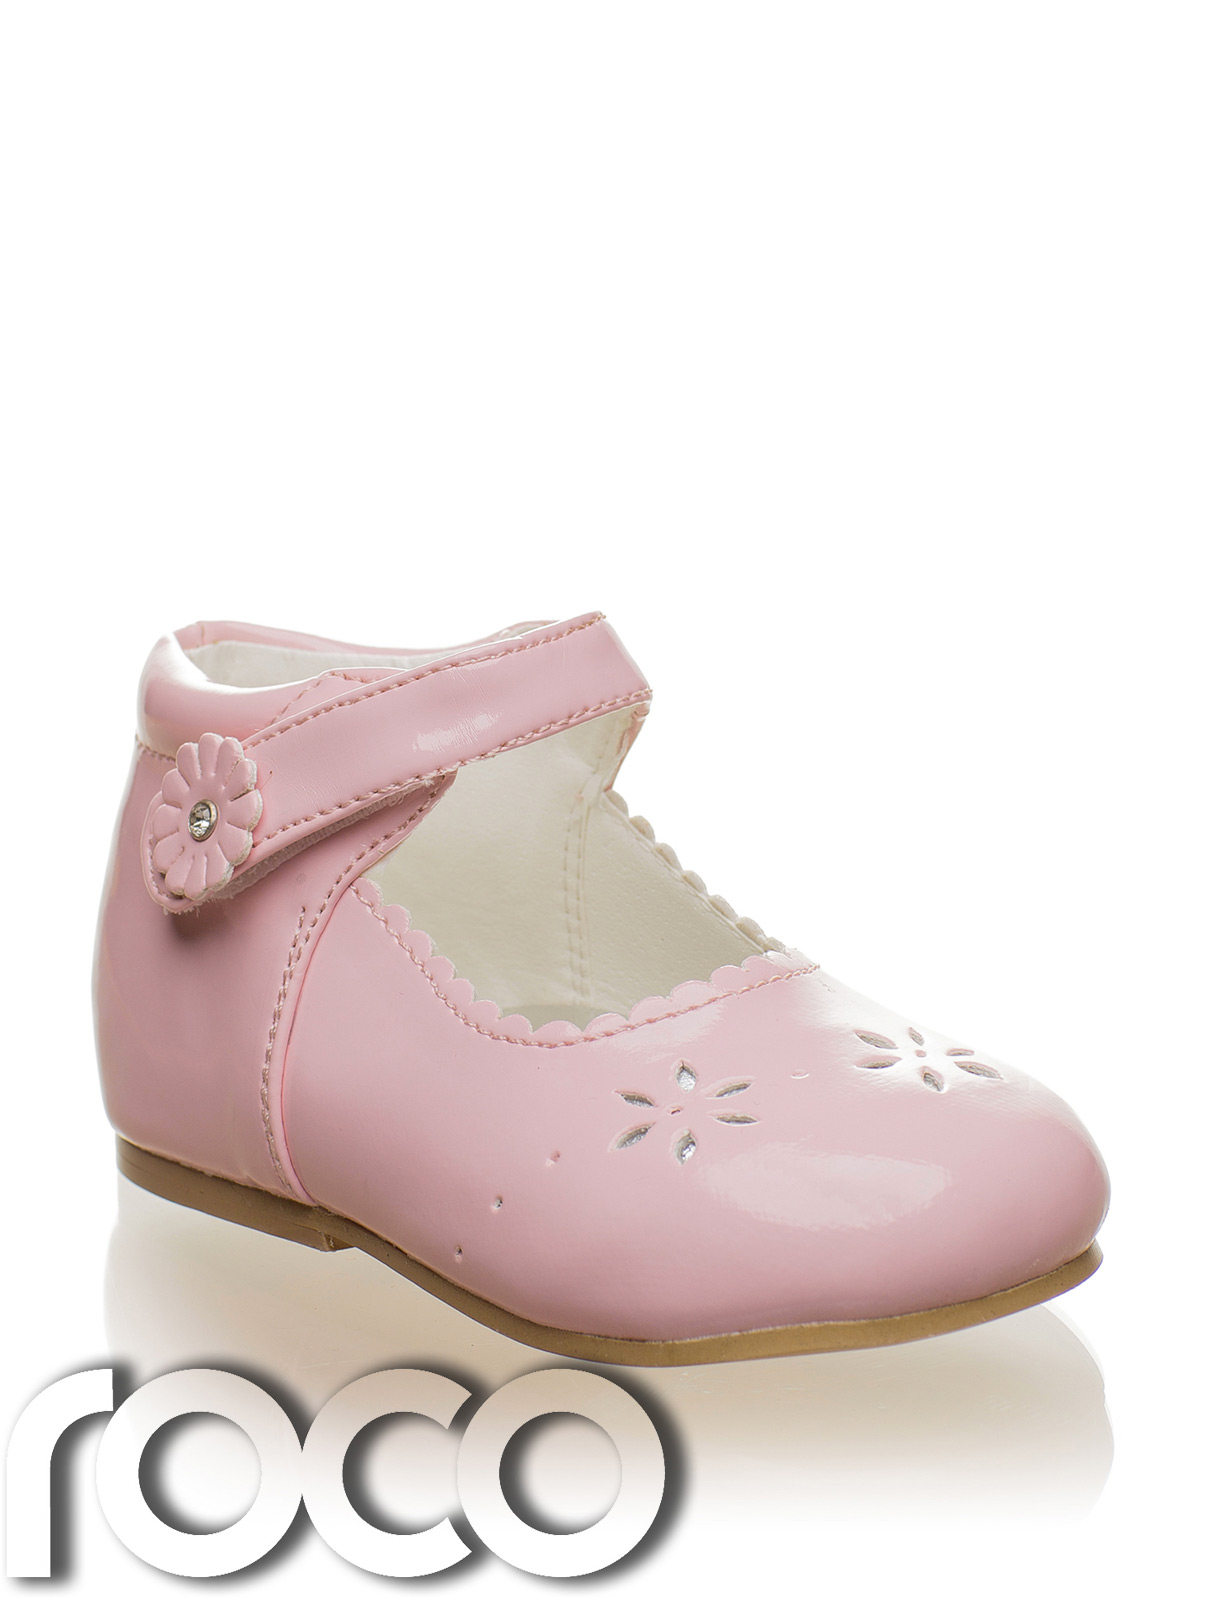 baby pink shoes christening shoes flower shoes